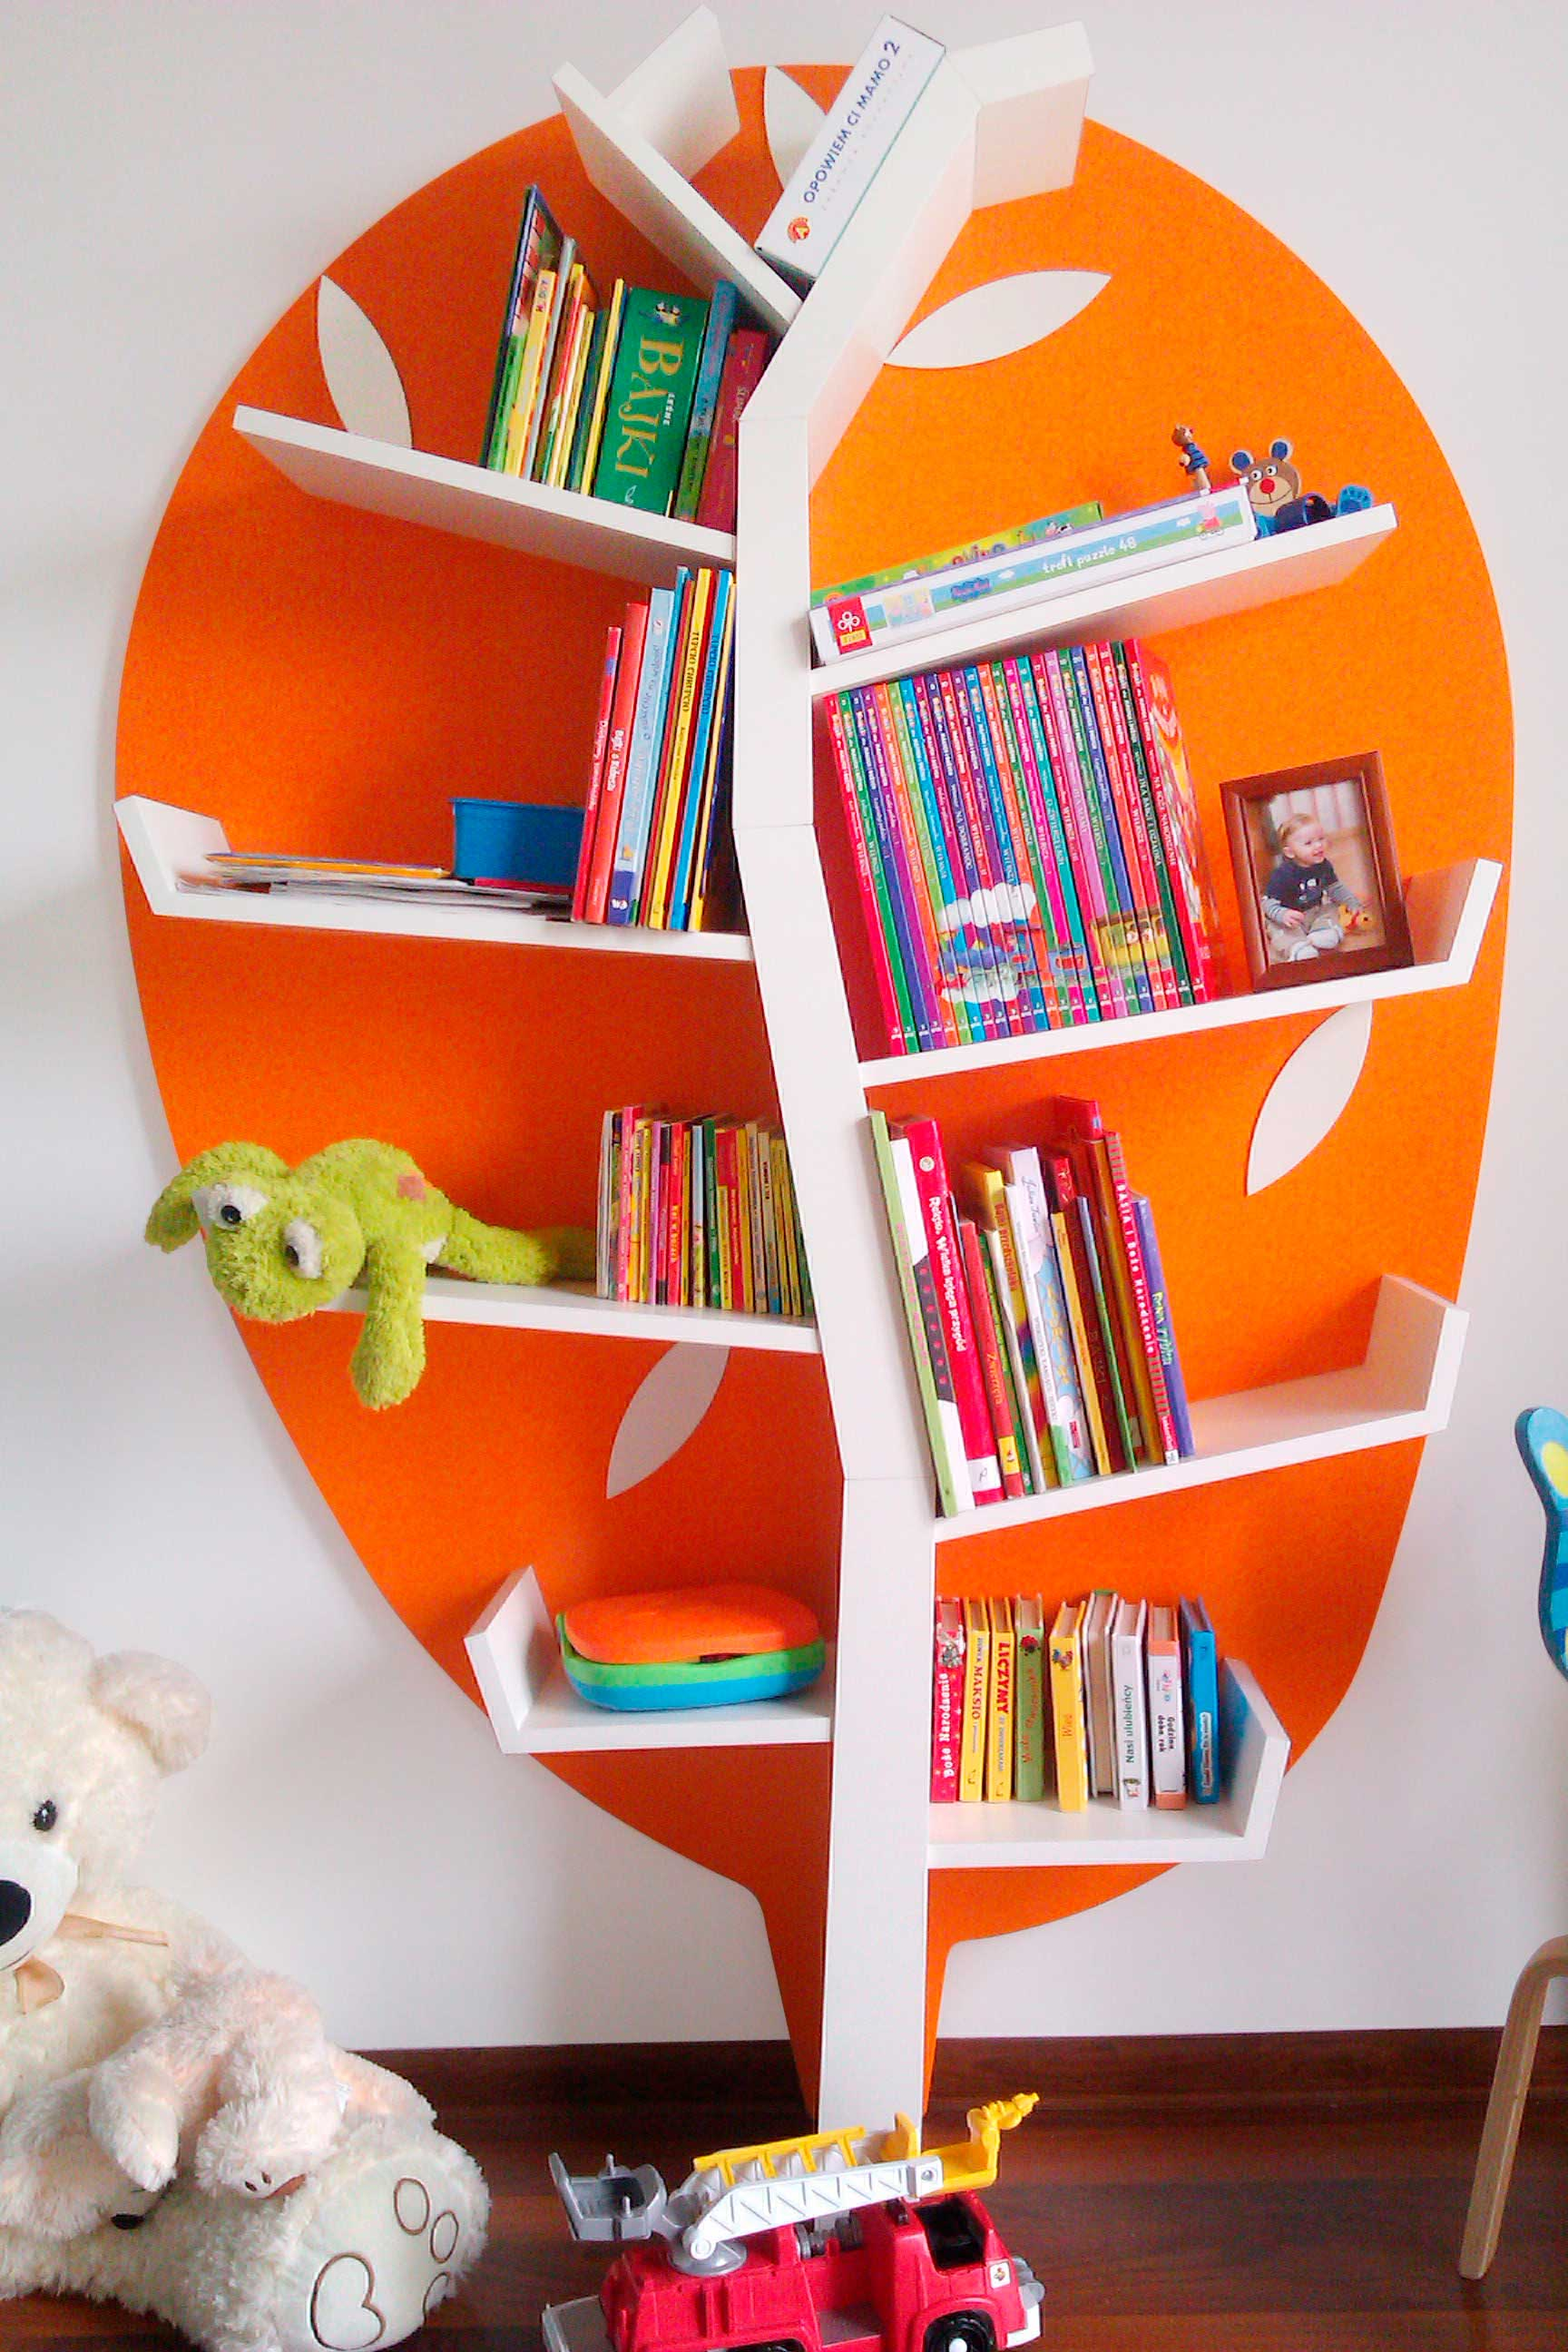 Bücherregal fürs Kinderzimmer - Wandregal Light Line bei Zimmeria